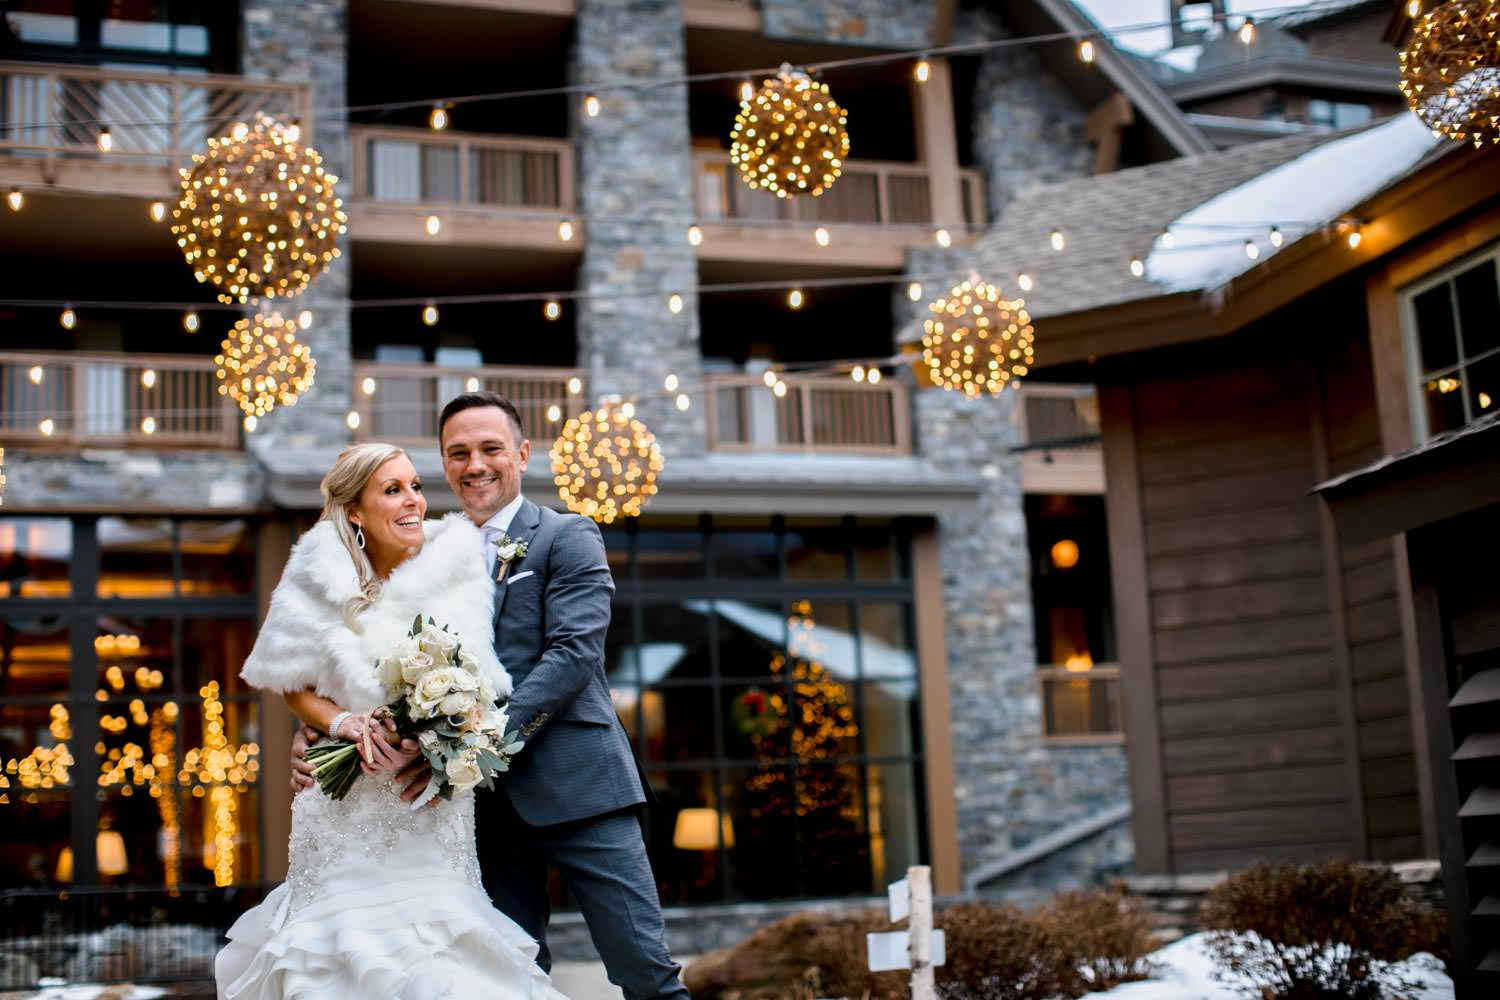 bride and groom standing outside of lodge at Stowe Mountain resort for wedding photographer with winter holiday lights in the background